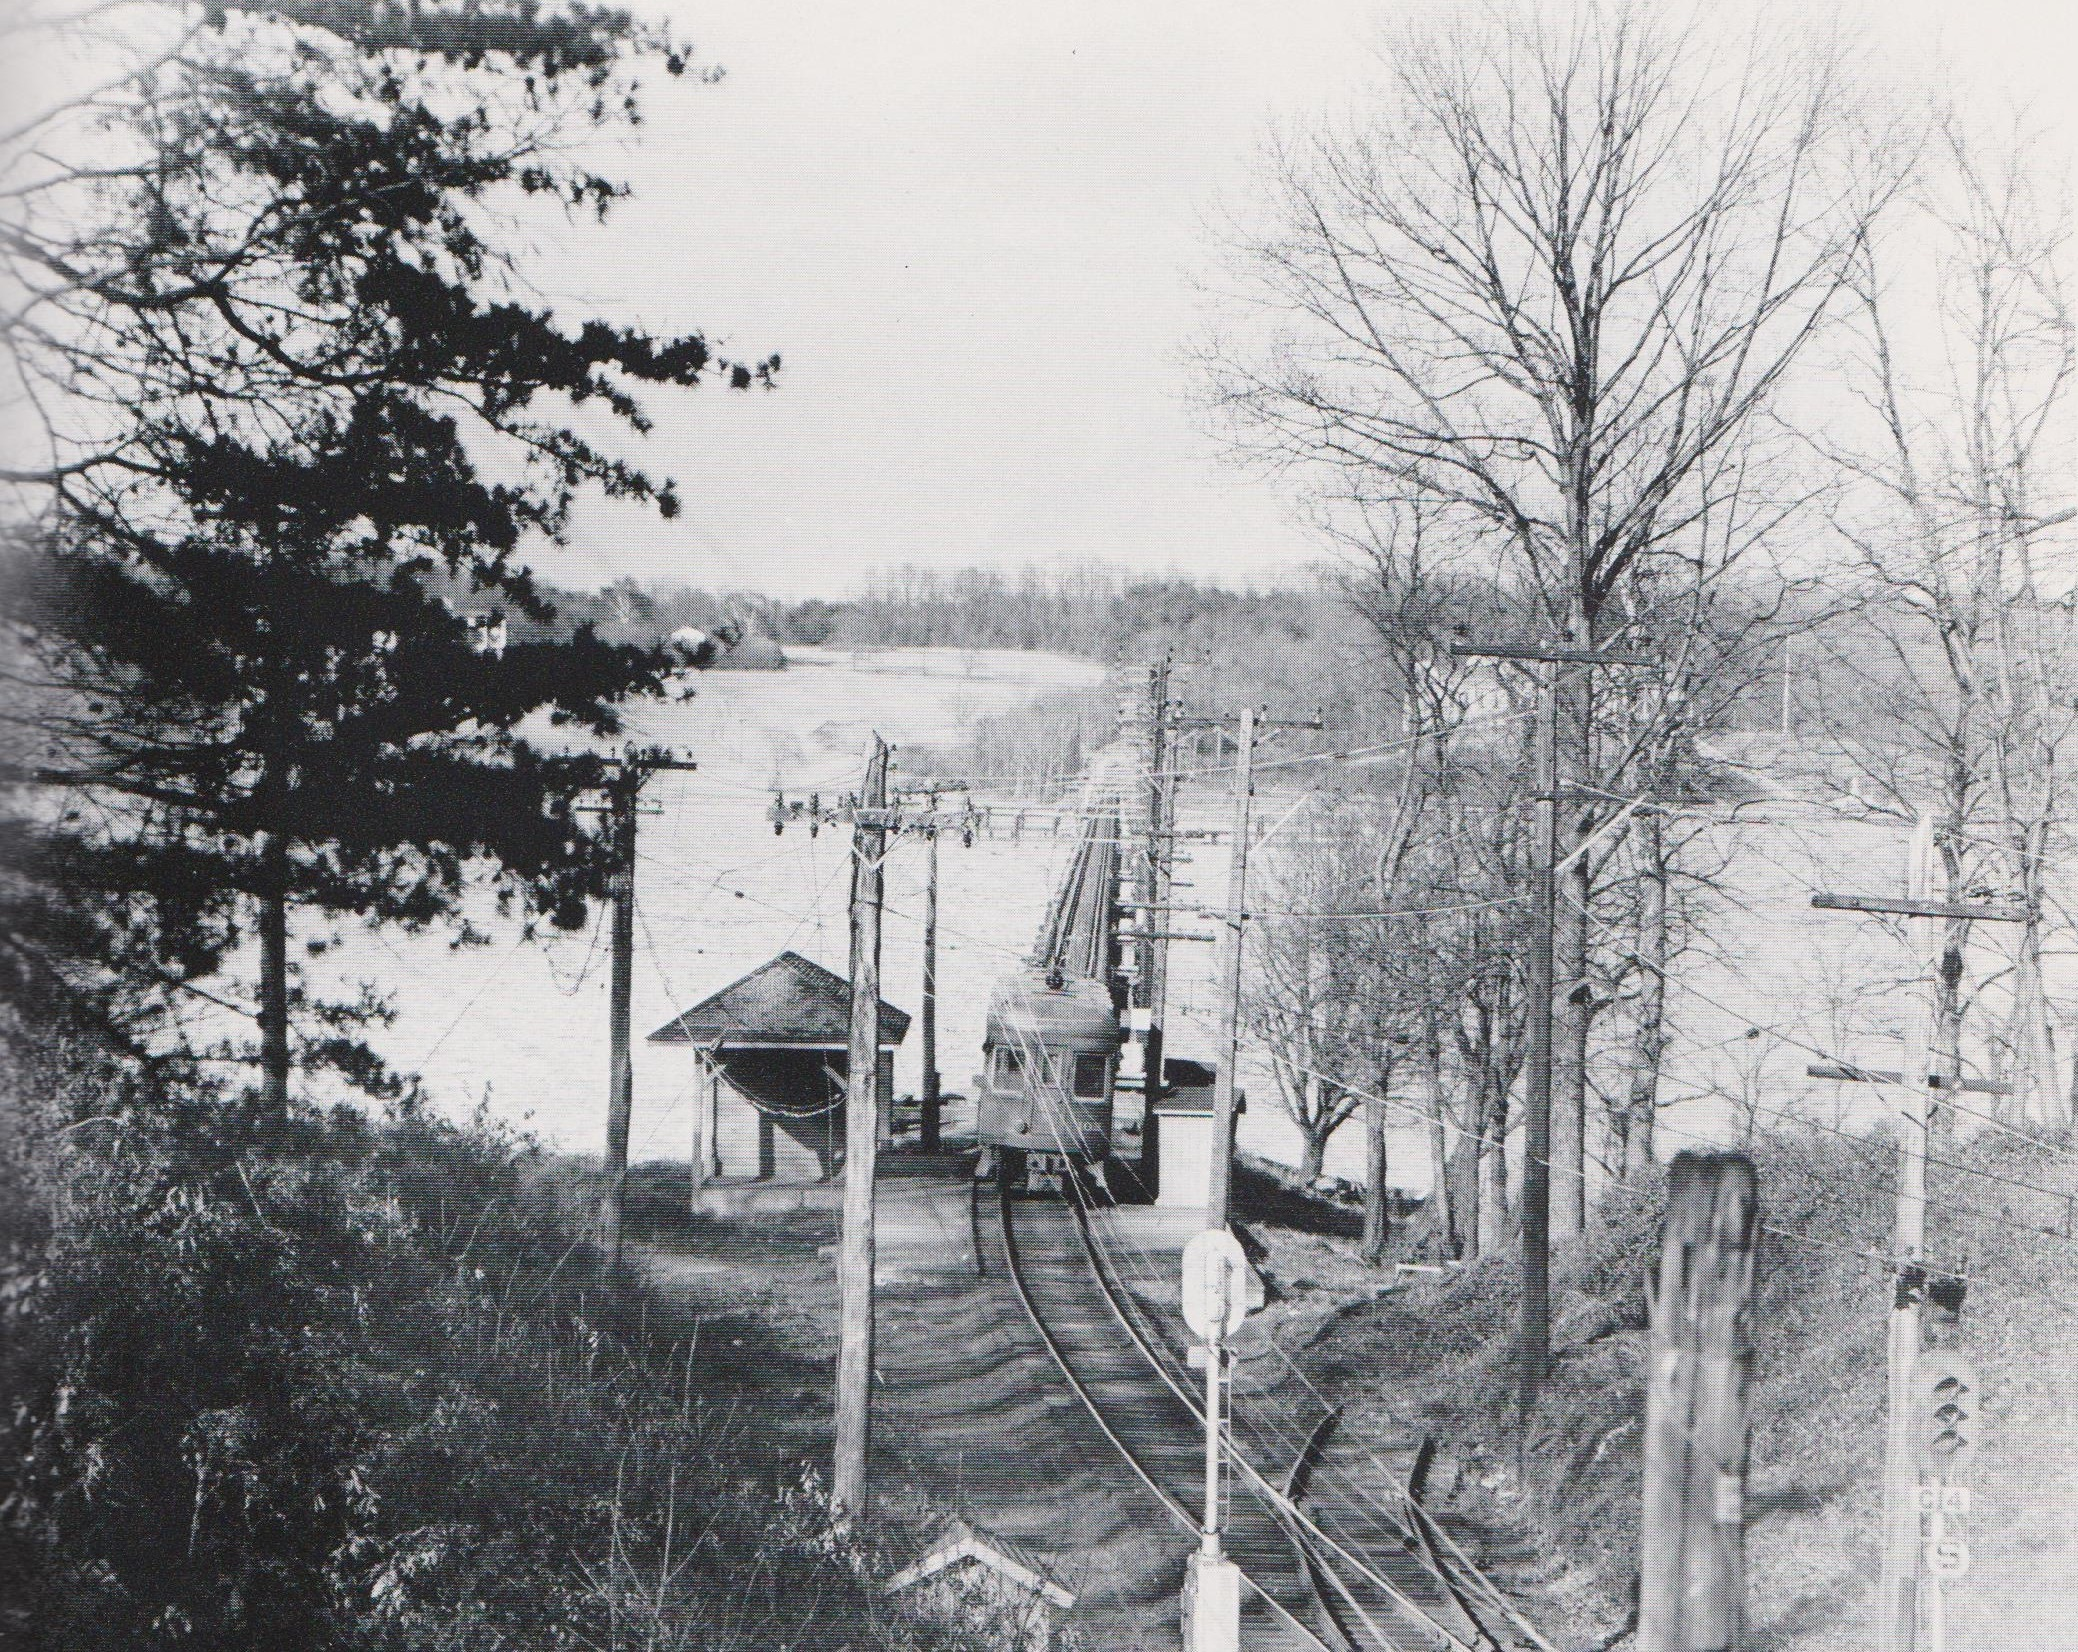 """Wardour Station. """"The plan of block signals included C-14 (foreground) and C-21 (opposite shore) which controlled automatic derails to protect the Severn River Bridge. The view looks toward the north shore."""" Annapolis, Maryland. Date: 1950. Source: R. A. Truax Photograph."""